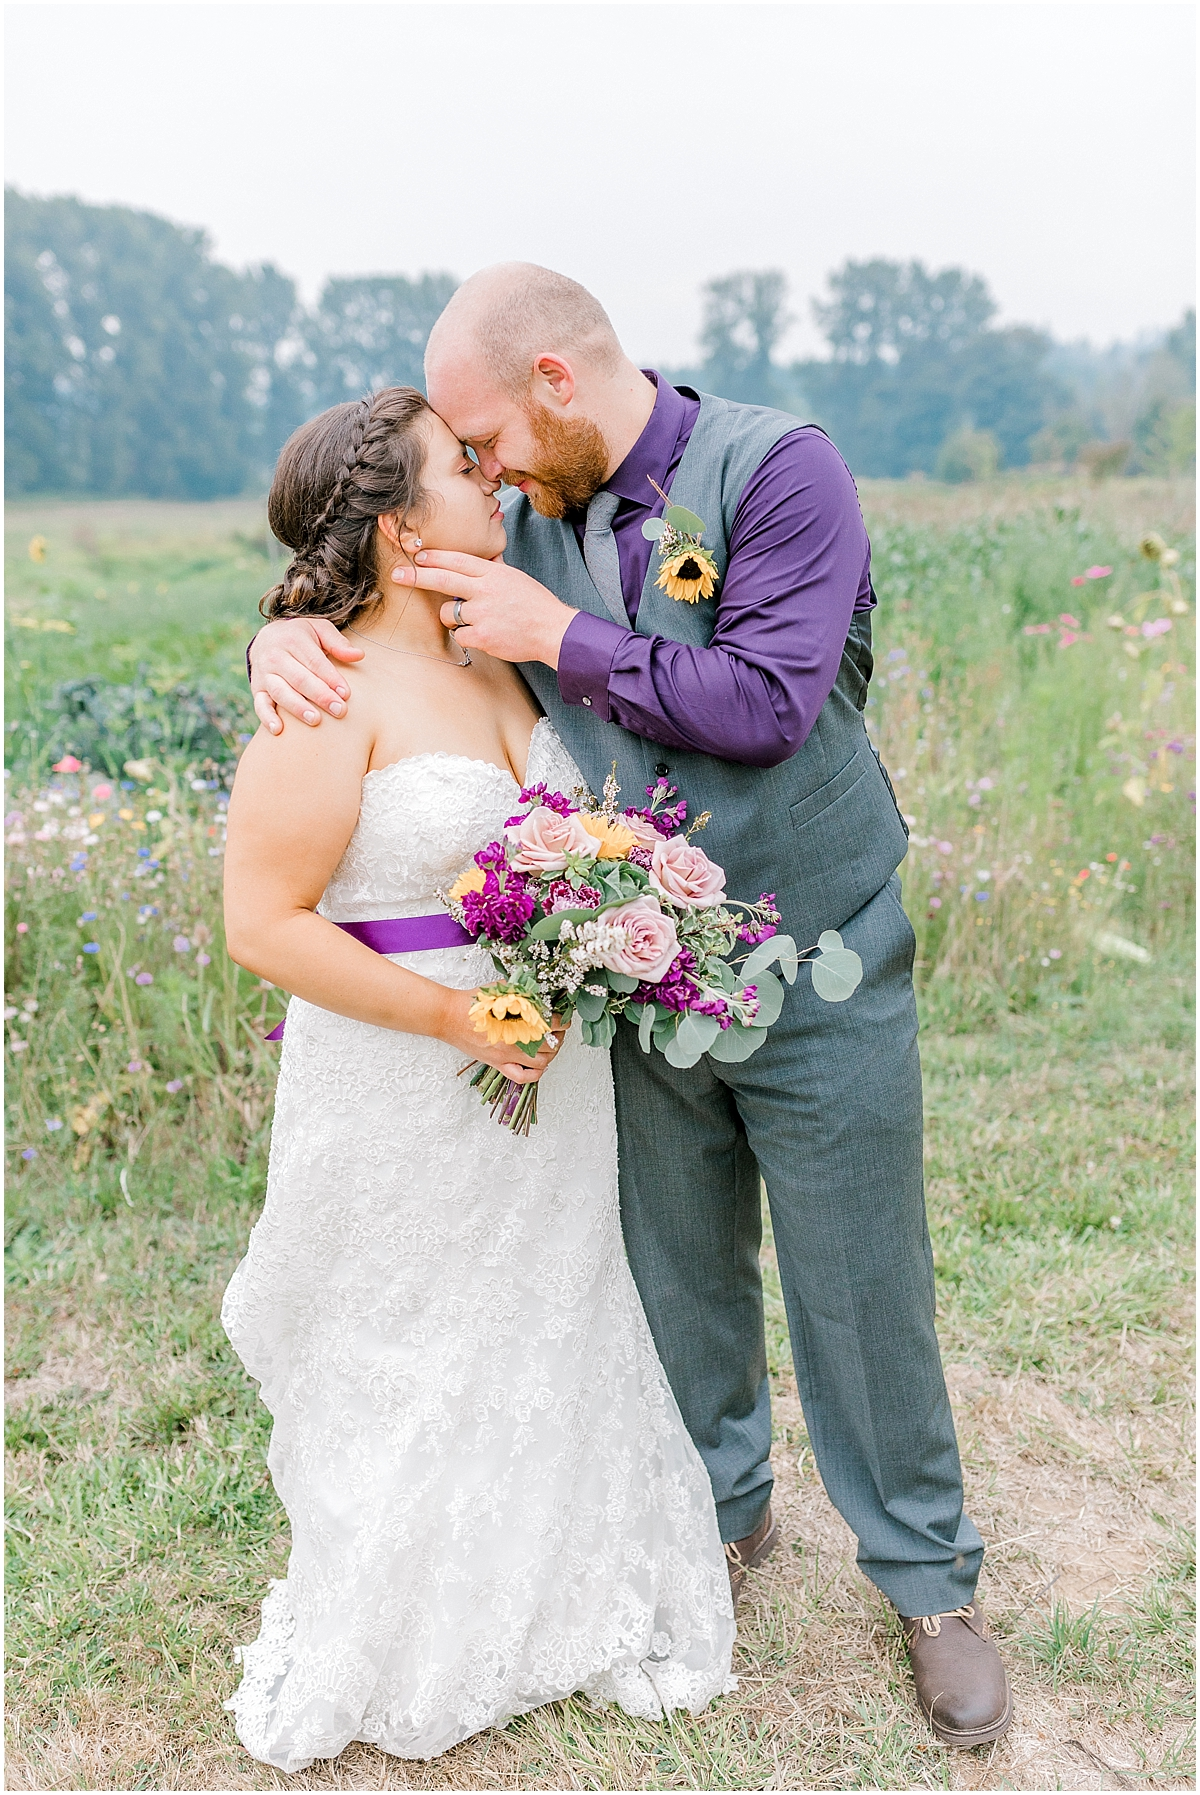 Sunflower themed wedding with purple accents, Emma Rose Company Seattle Wedding Photographer, Light and Airy photographer Kindred Presets Wedding Details PNW_0176.jpg